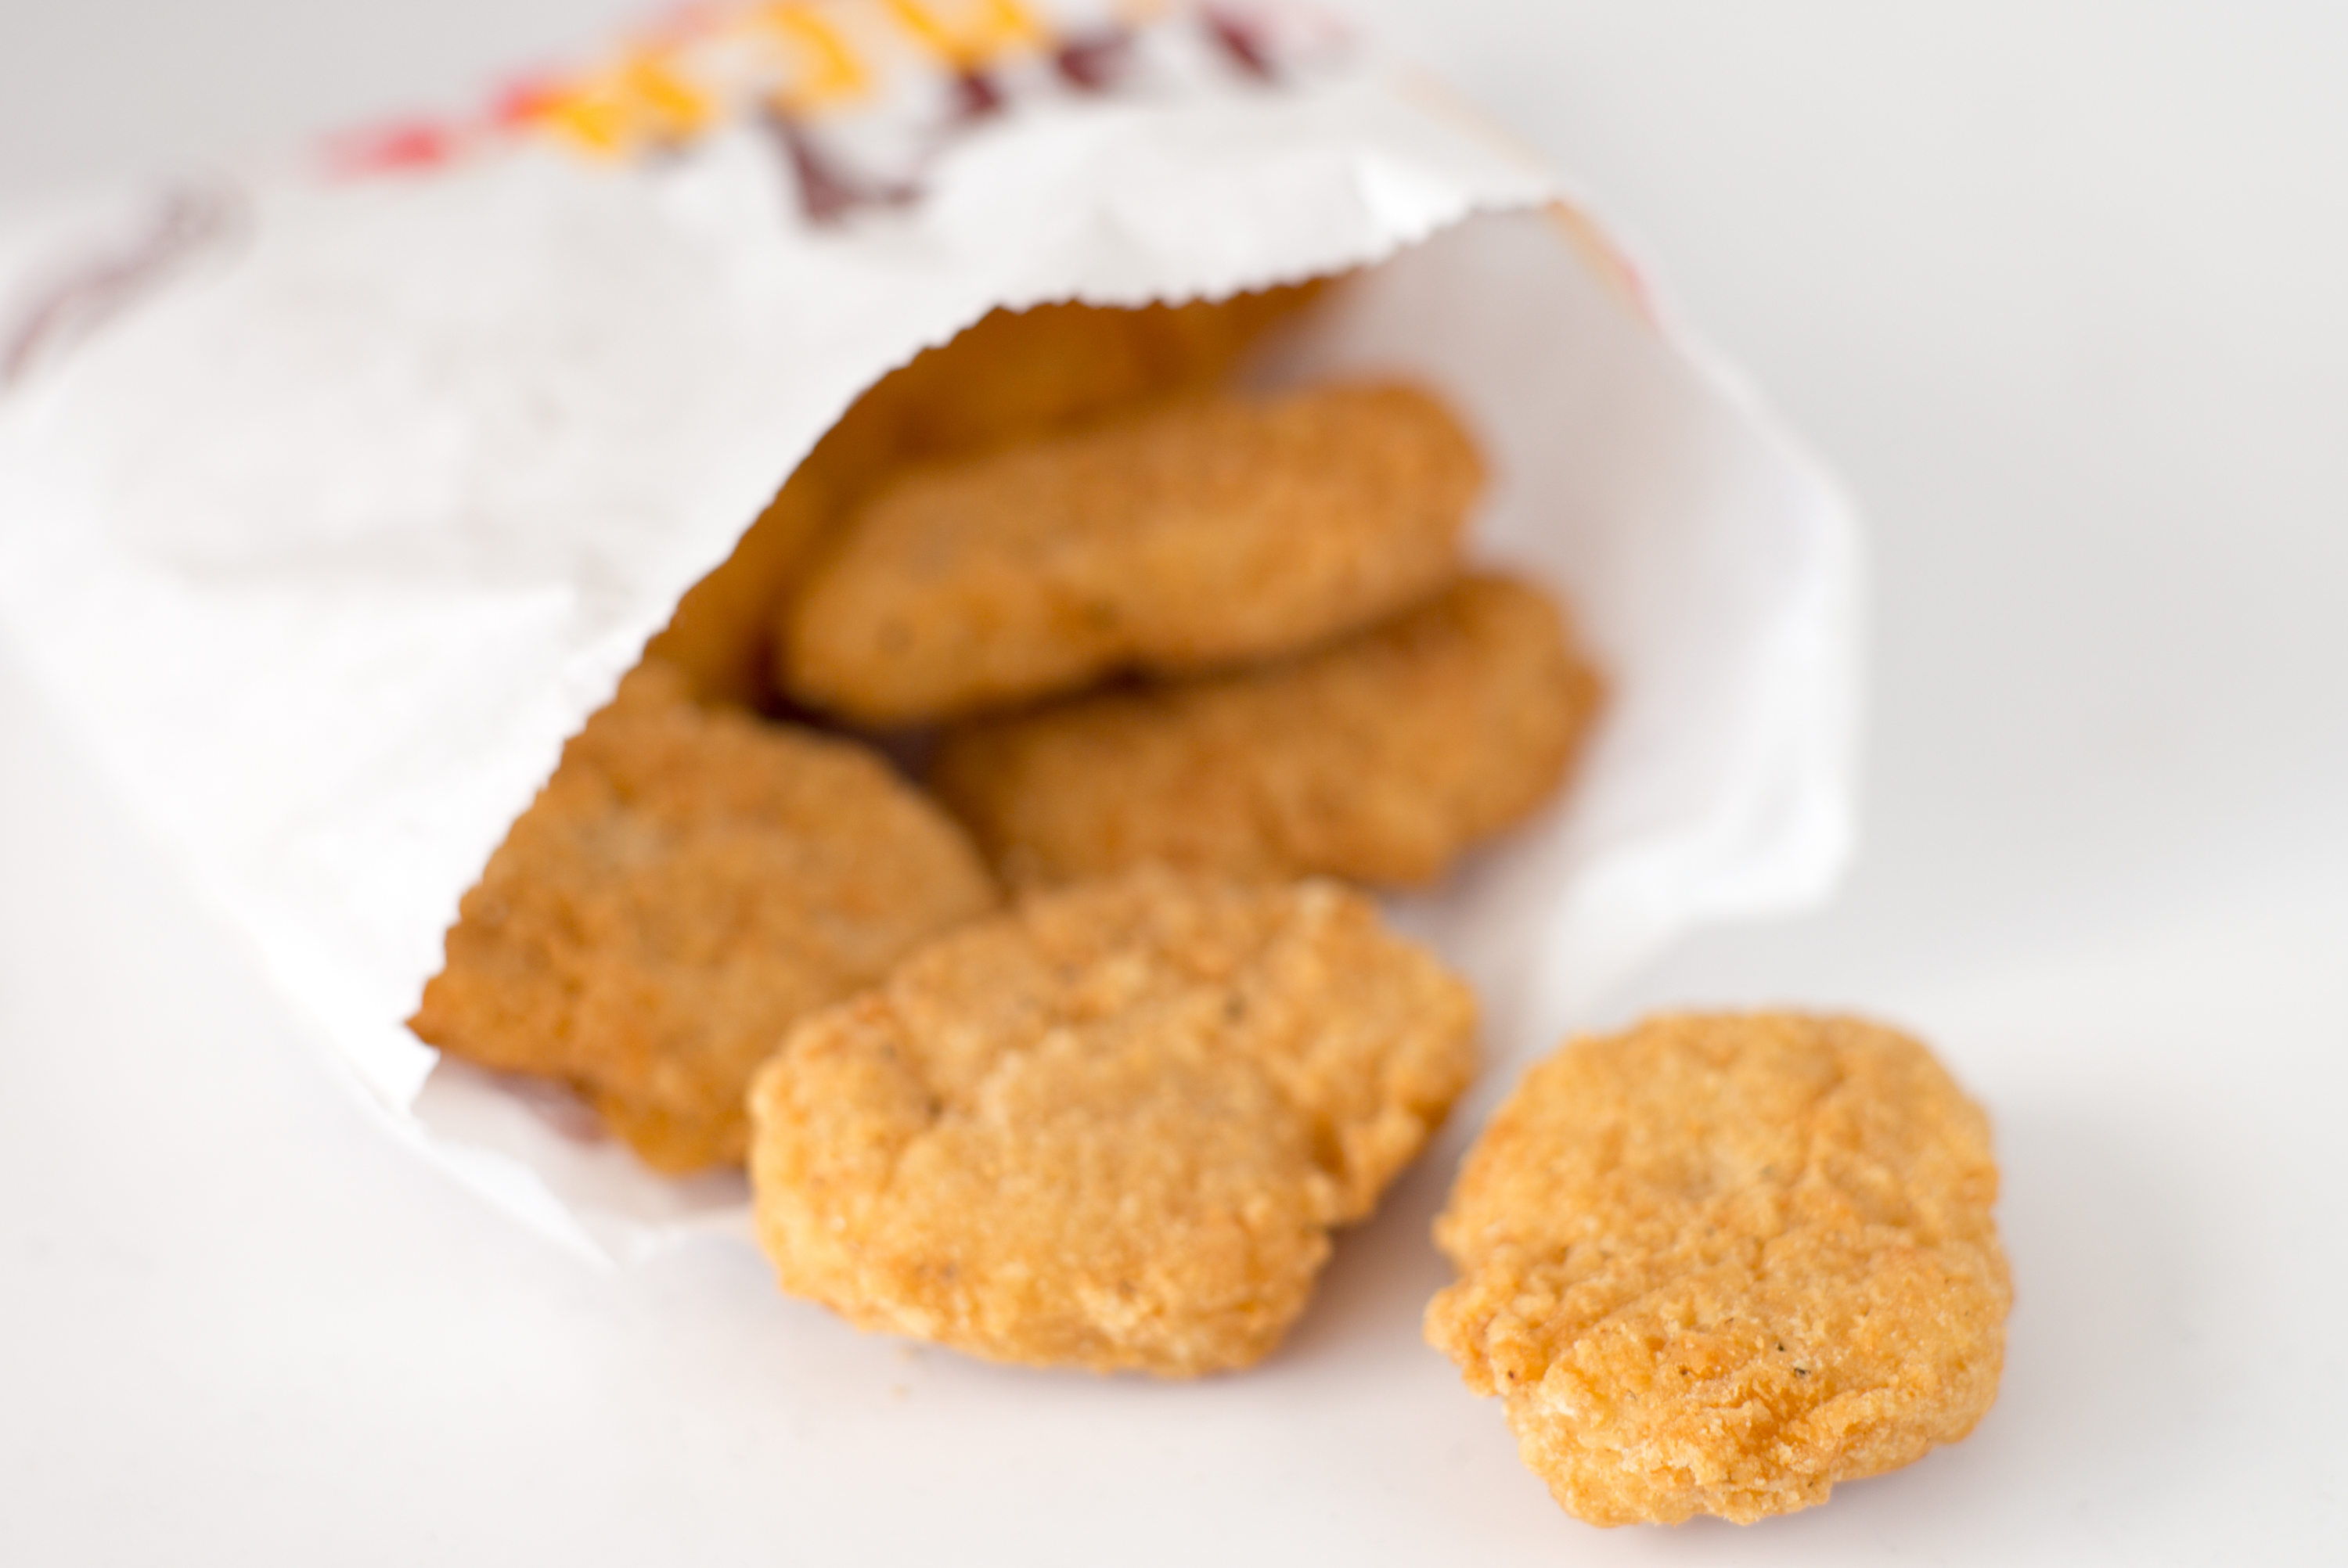 Fast Food With Chicken Nuggets